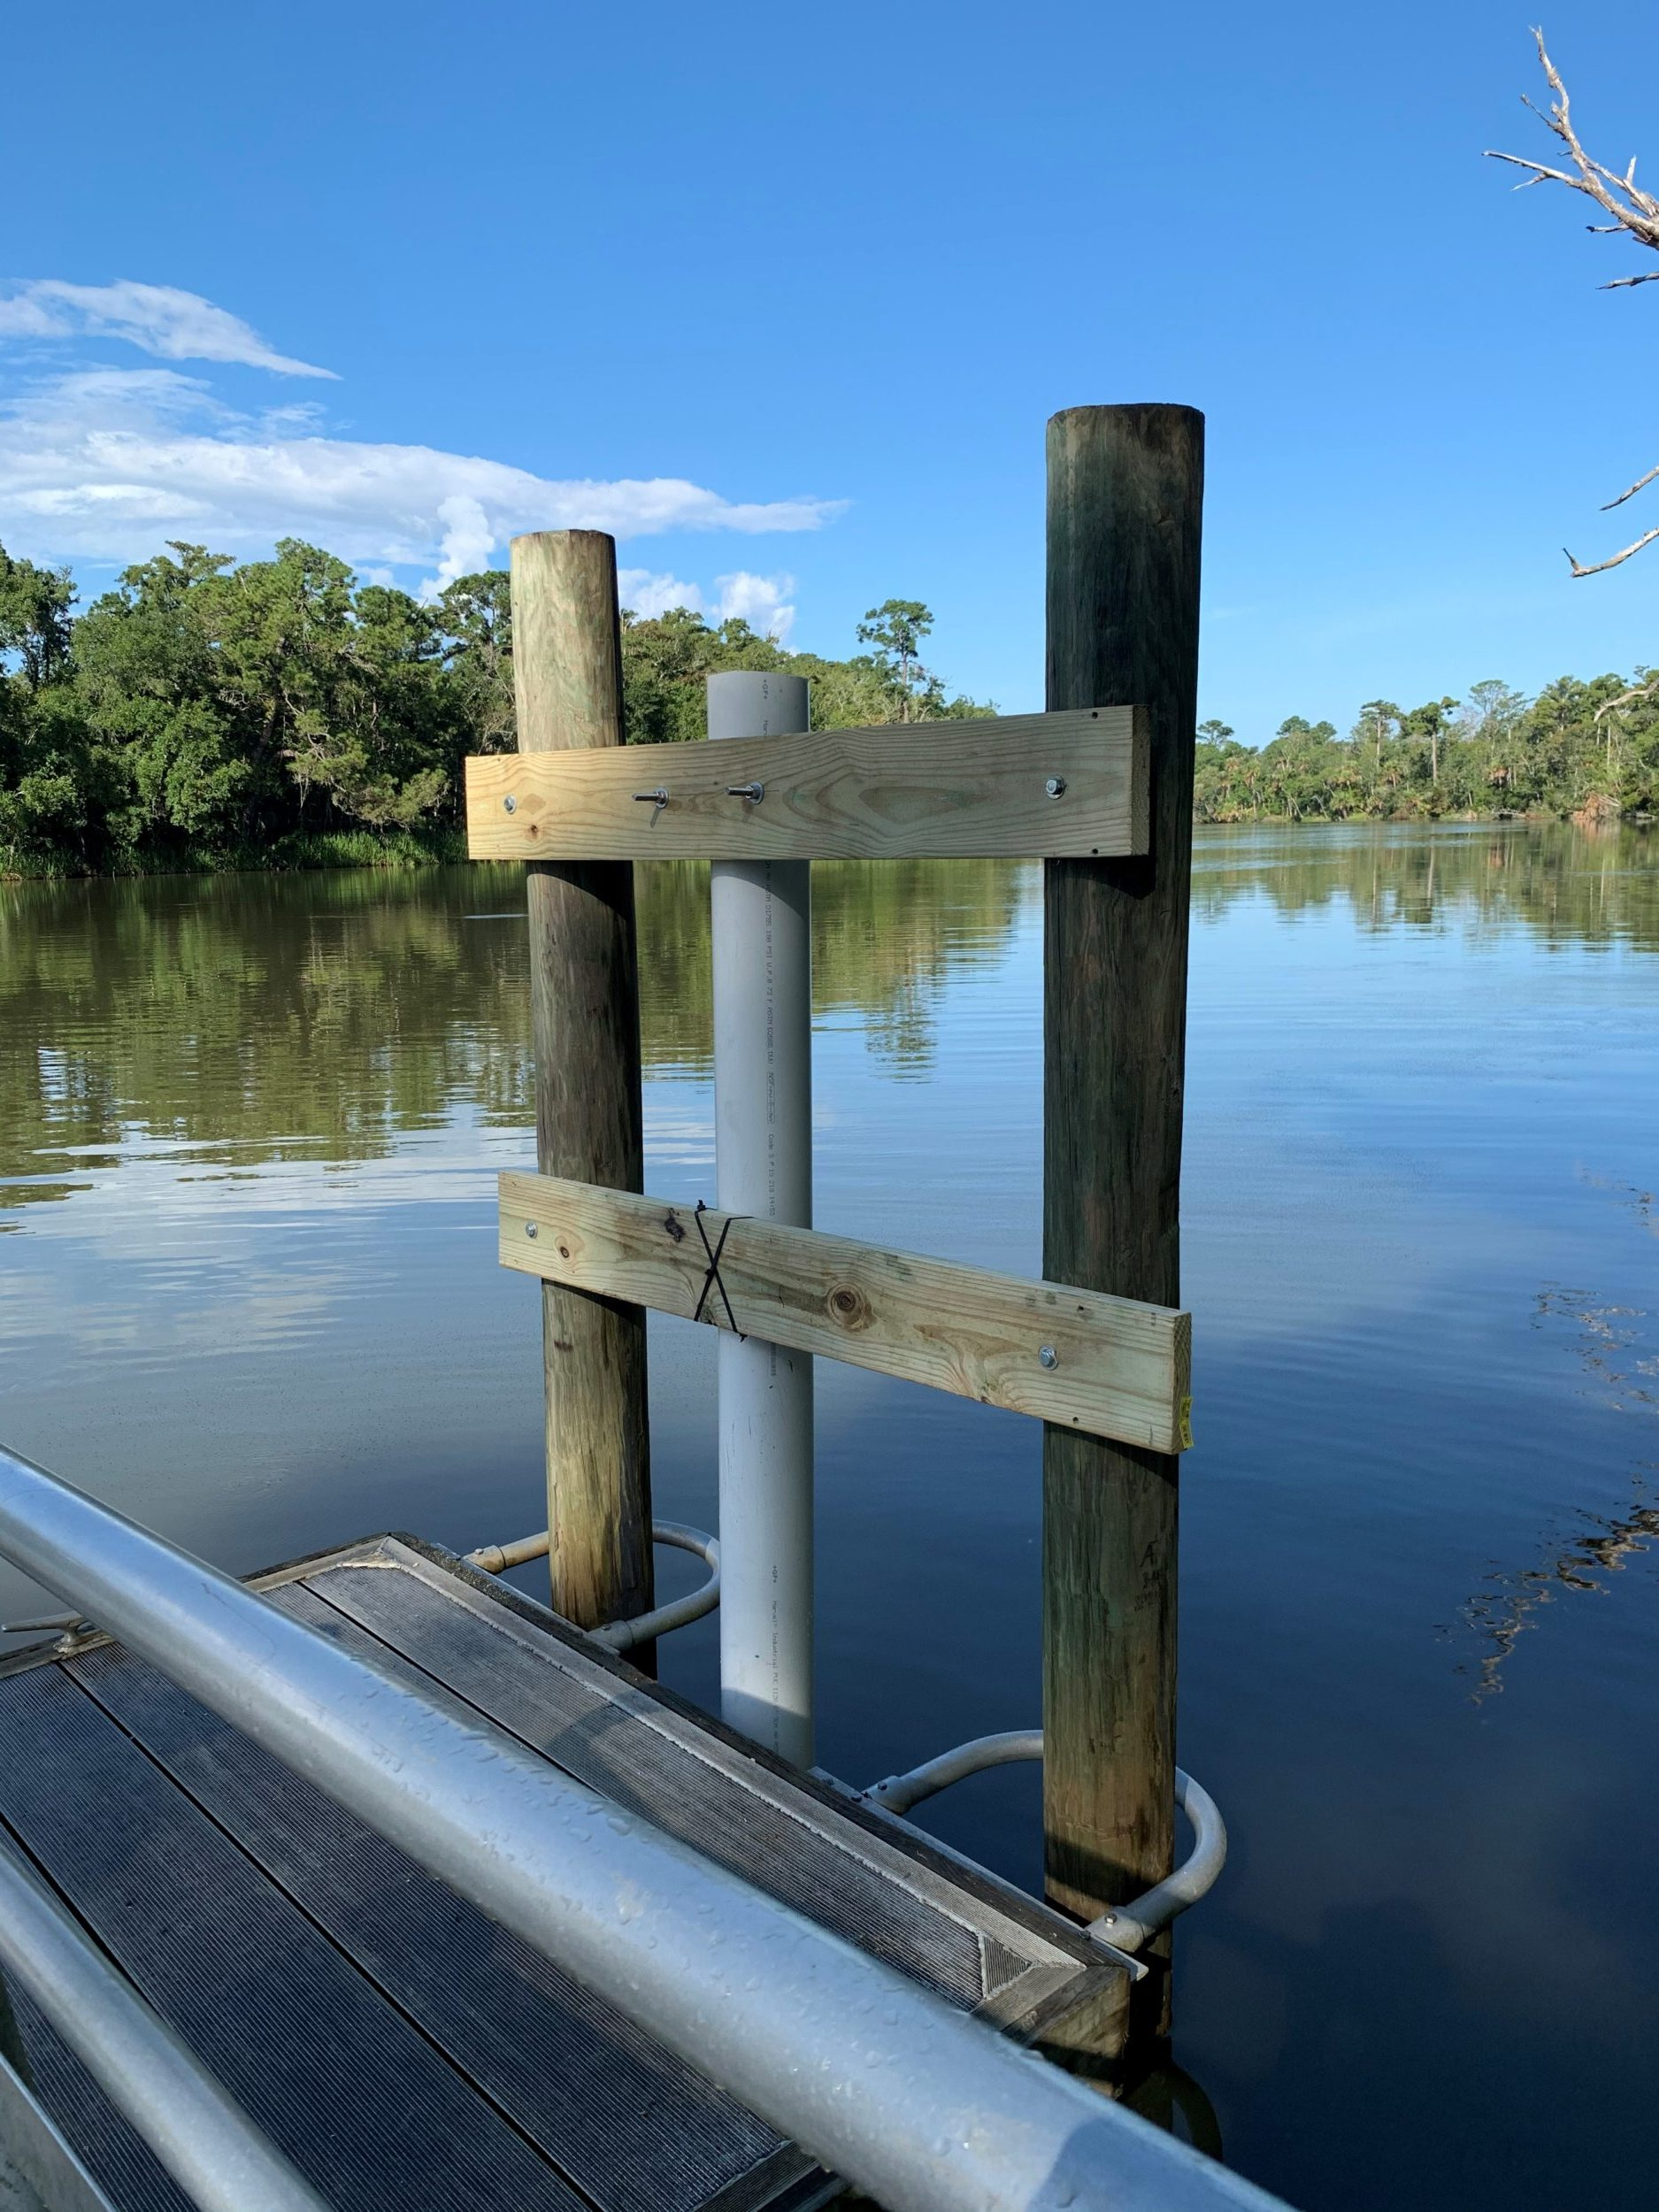 The newly installed water quality monitoring station at Butcher Pen Landing